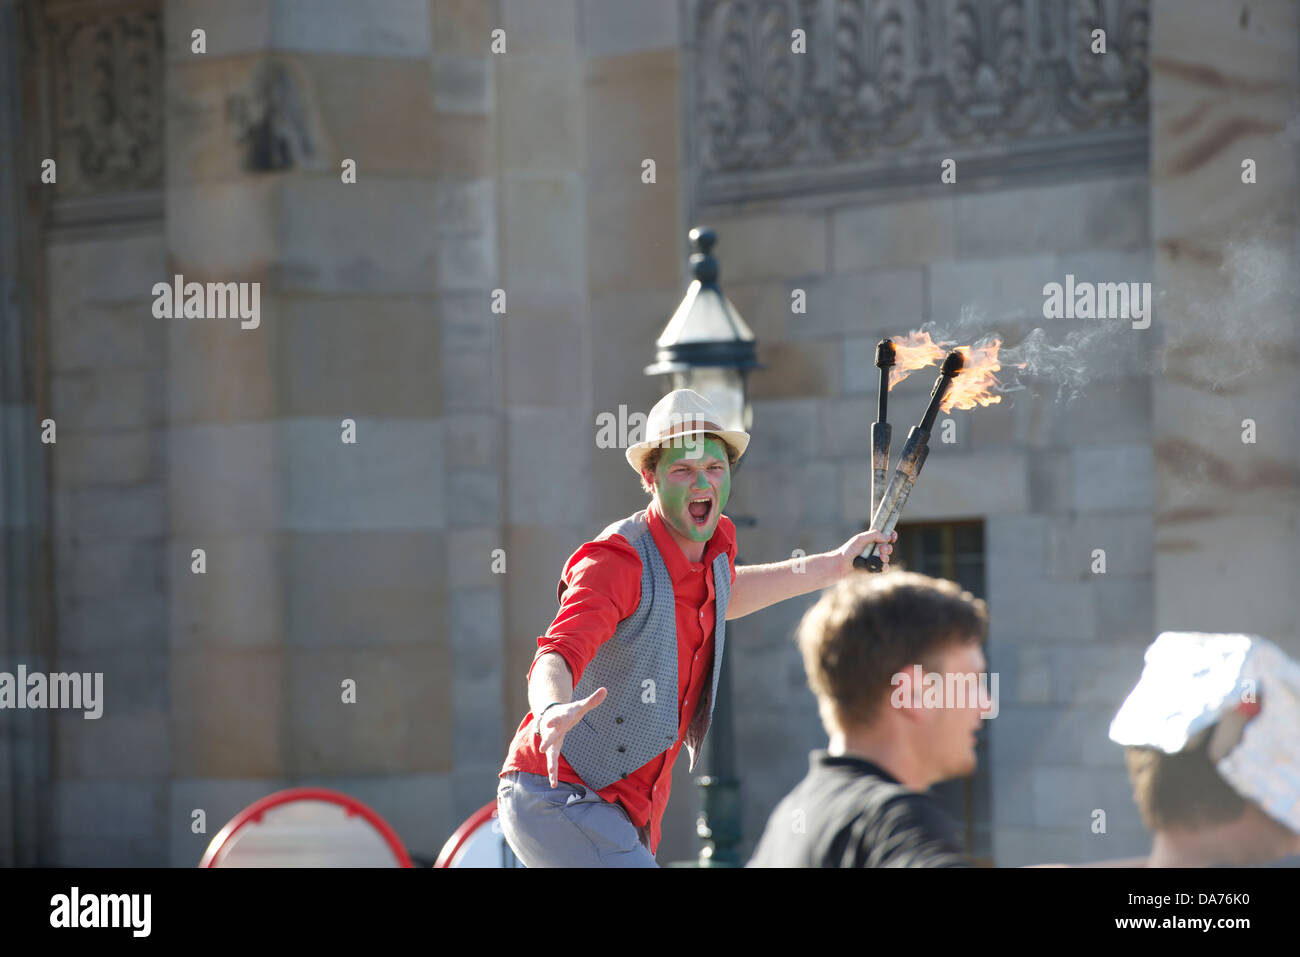 Juggler with fire-sticks entertains Festival visitors outside the Scottish National Gallery in Edinburgh. - Stock Image